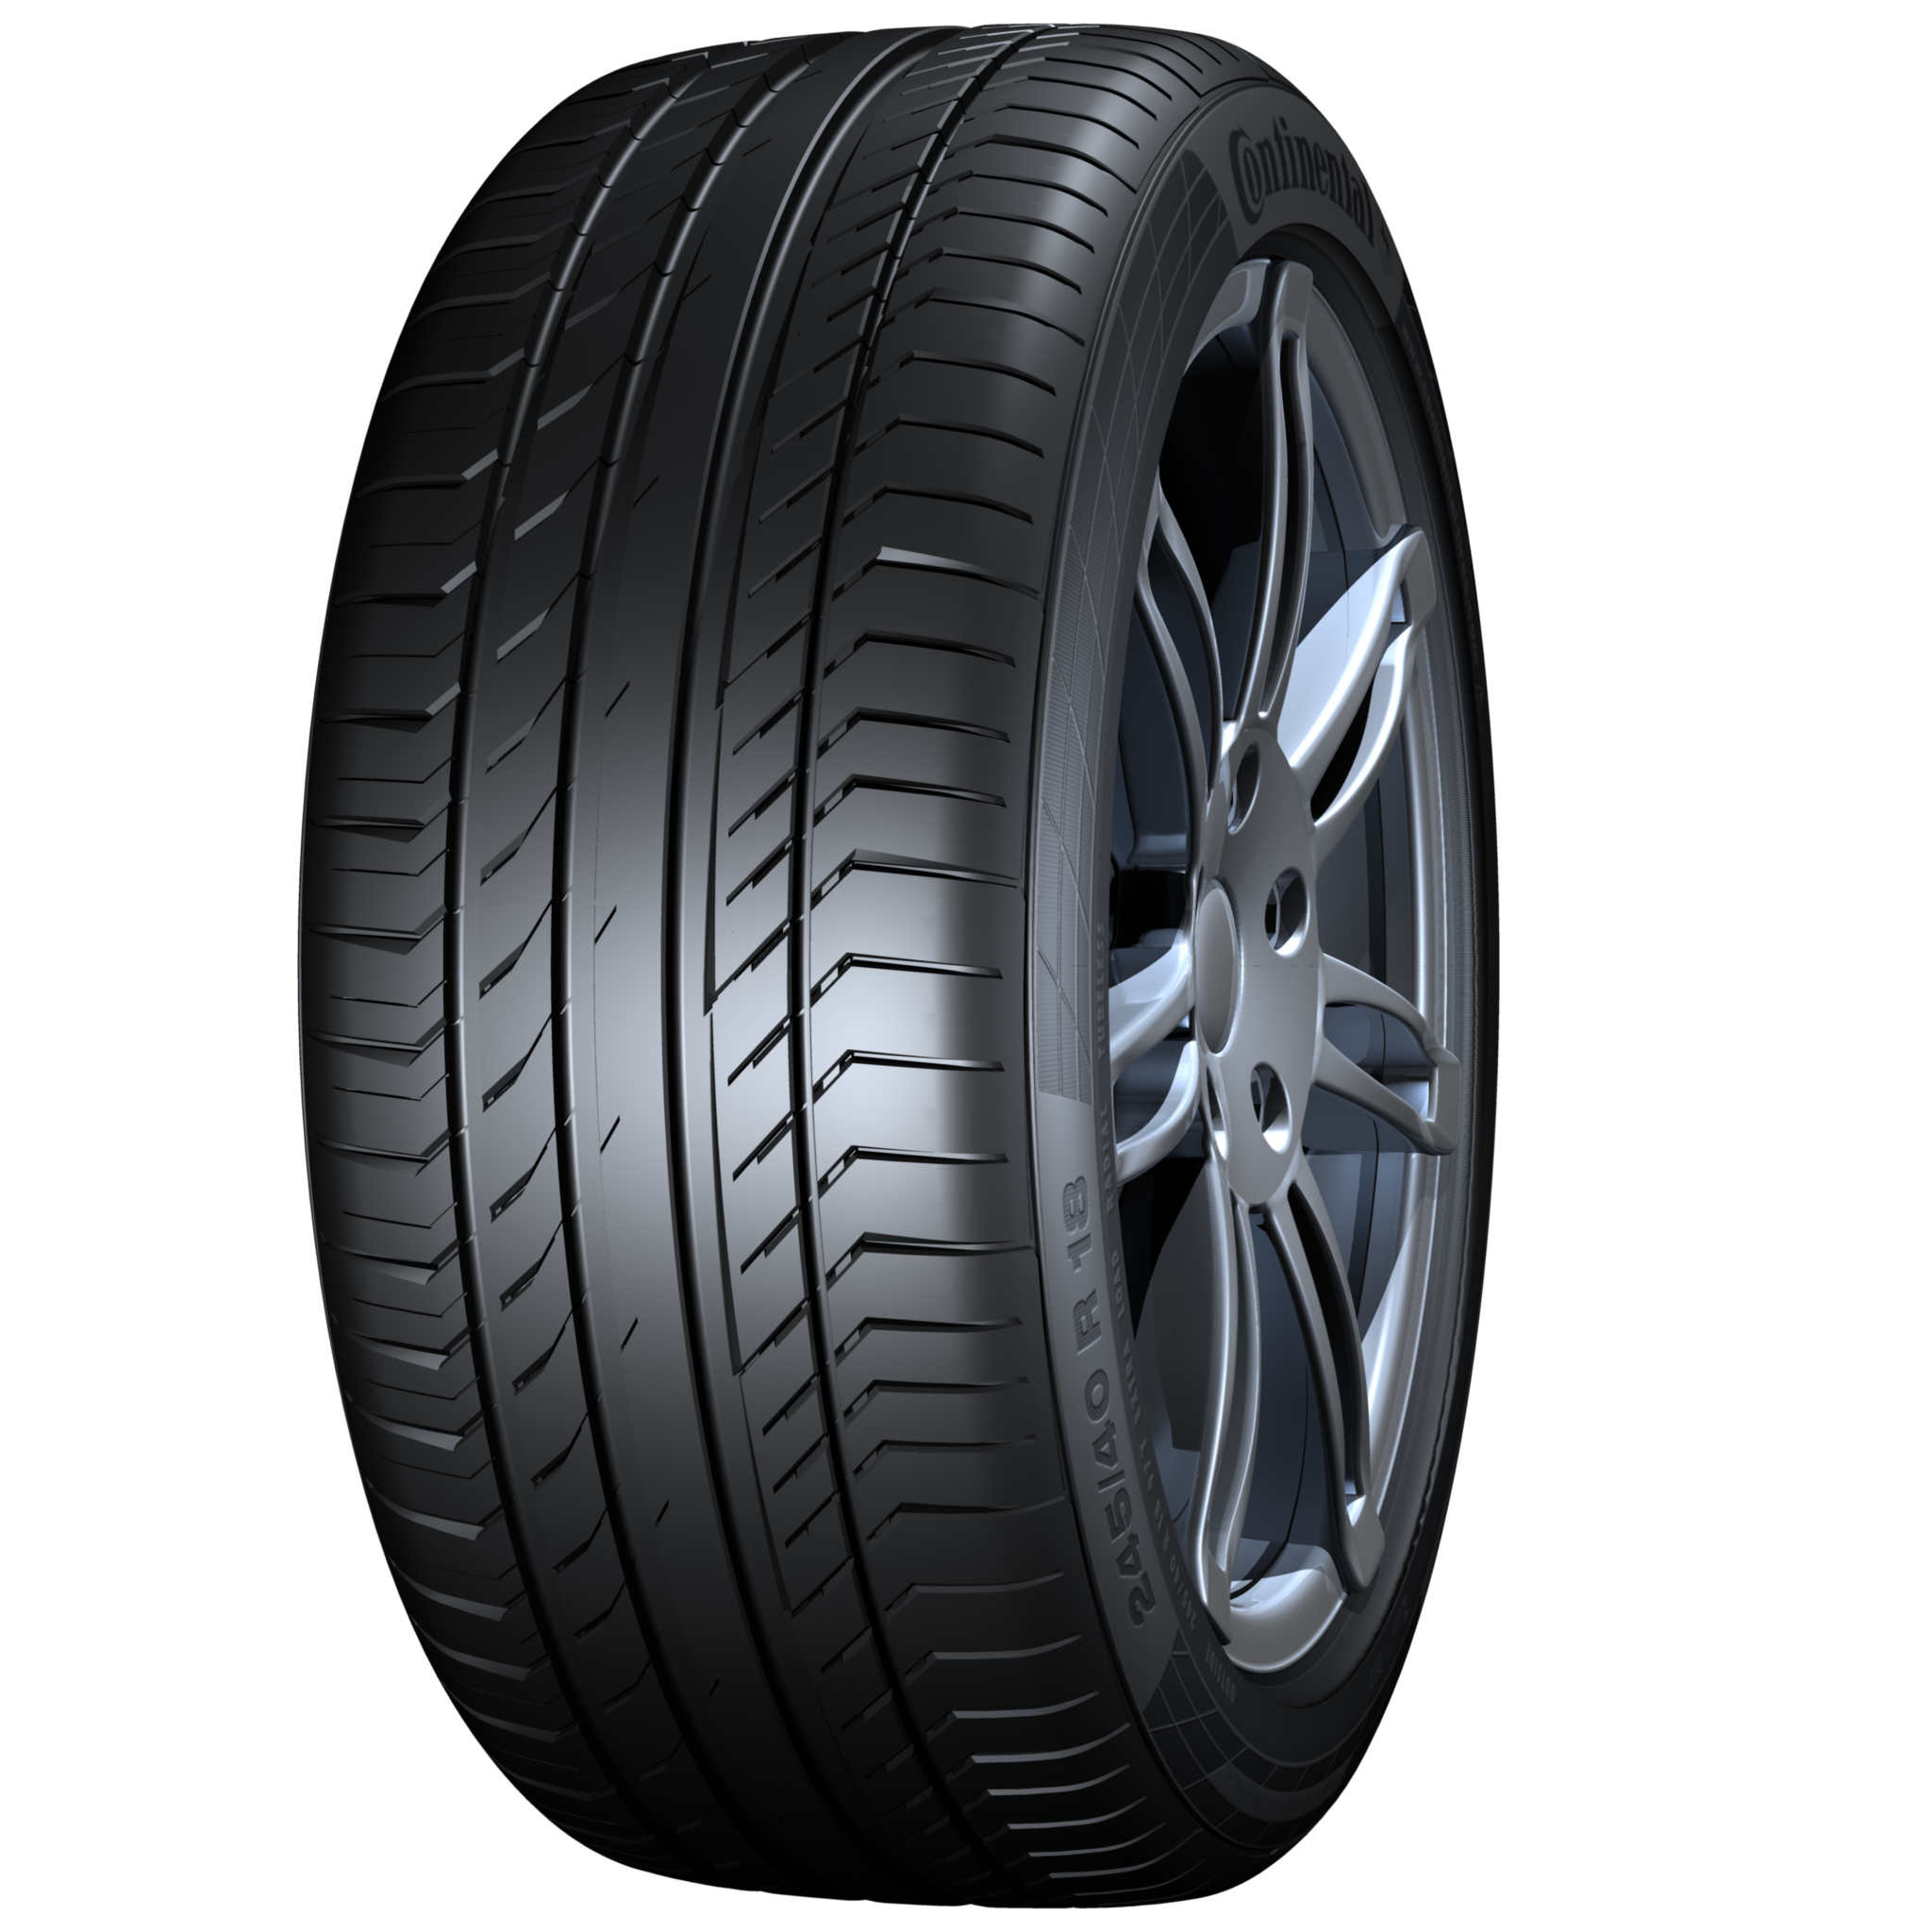 295/40R22 SPORTCONTACT 5...